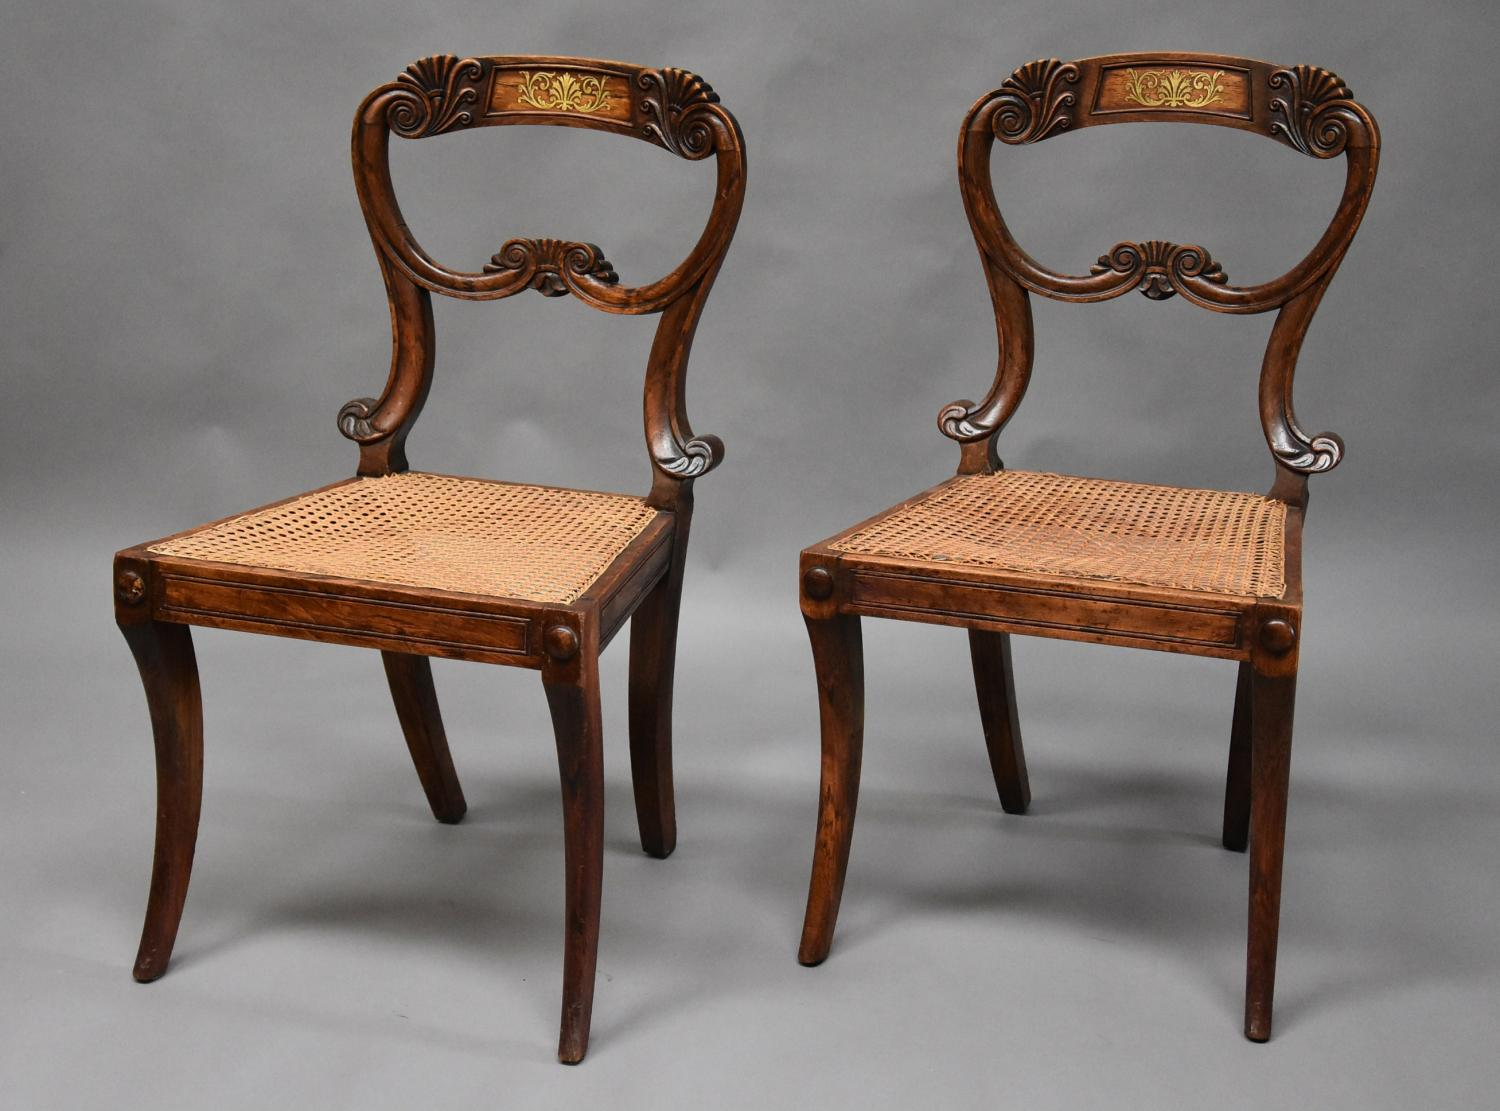 Pair of simulated rosewood Regency chairs